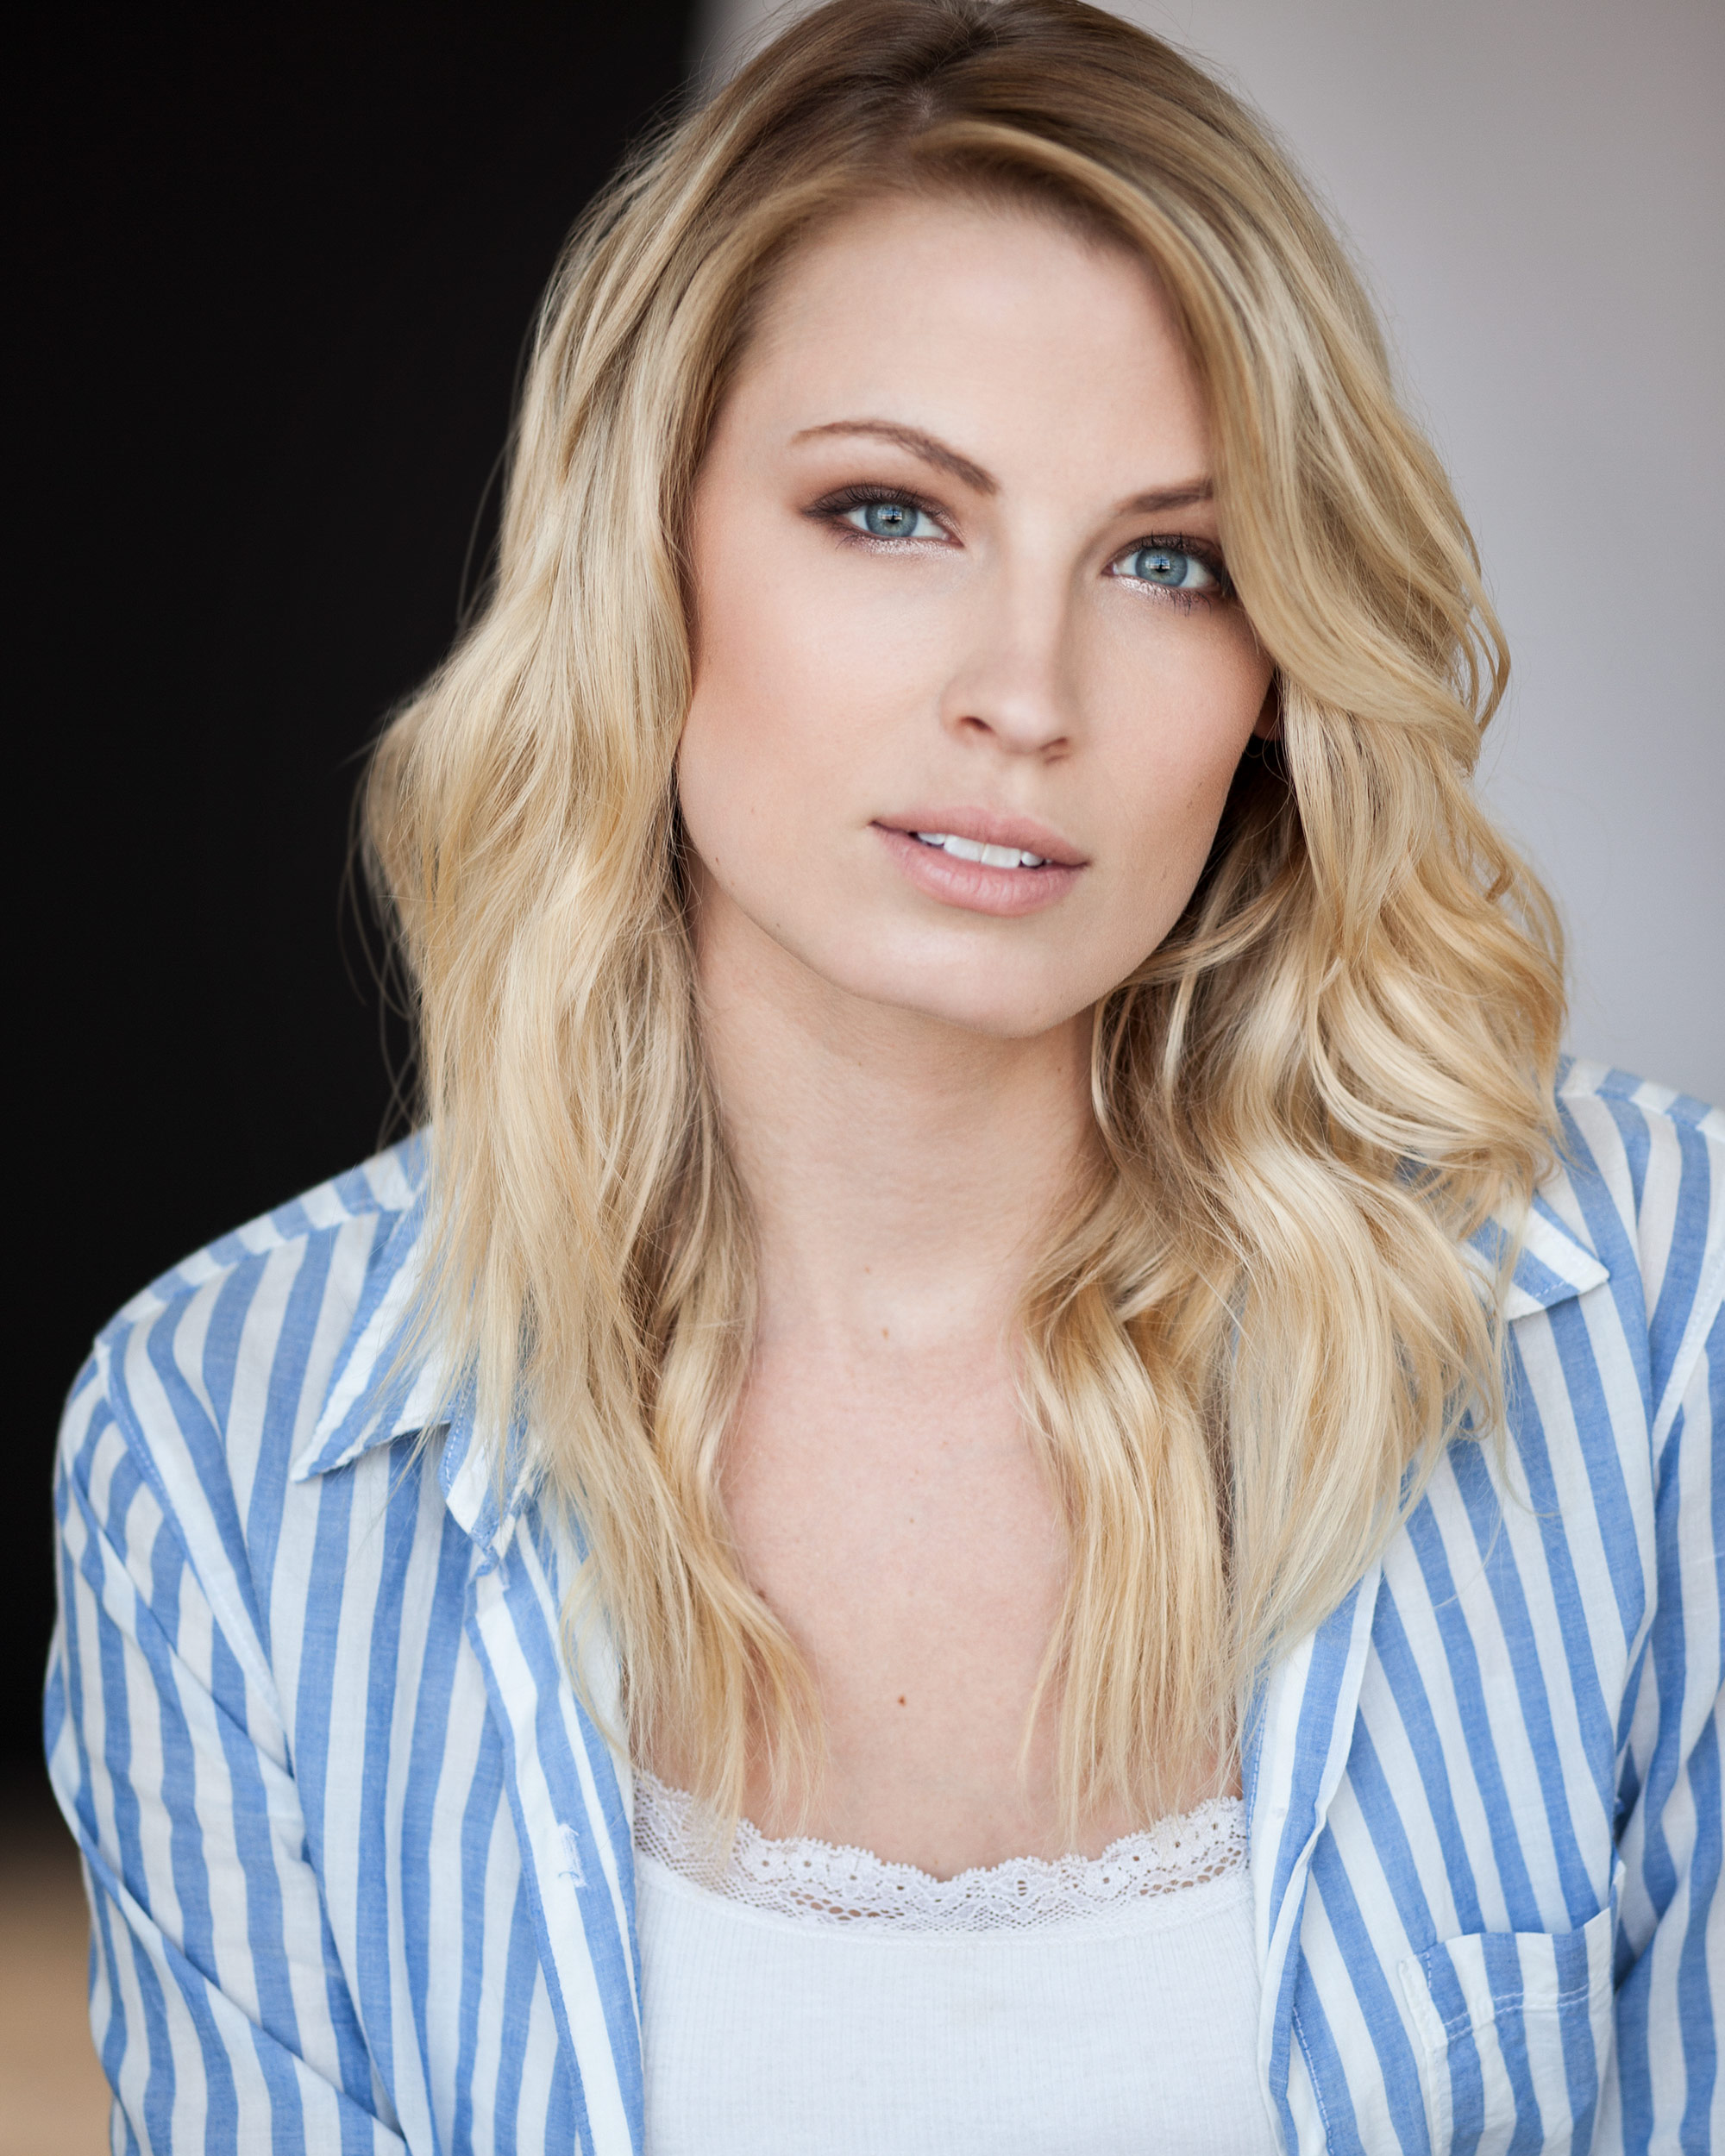 Andie_Miller_model_los_angeles_headshot.jpg